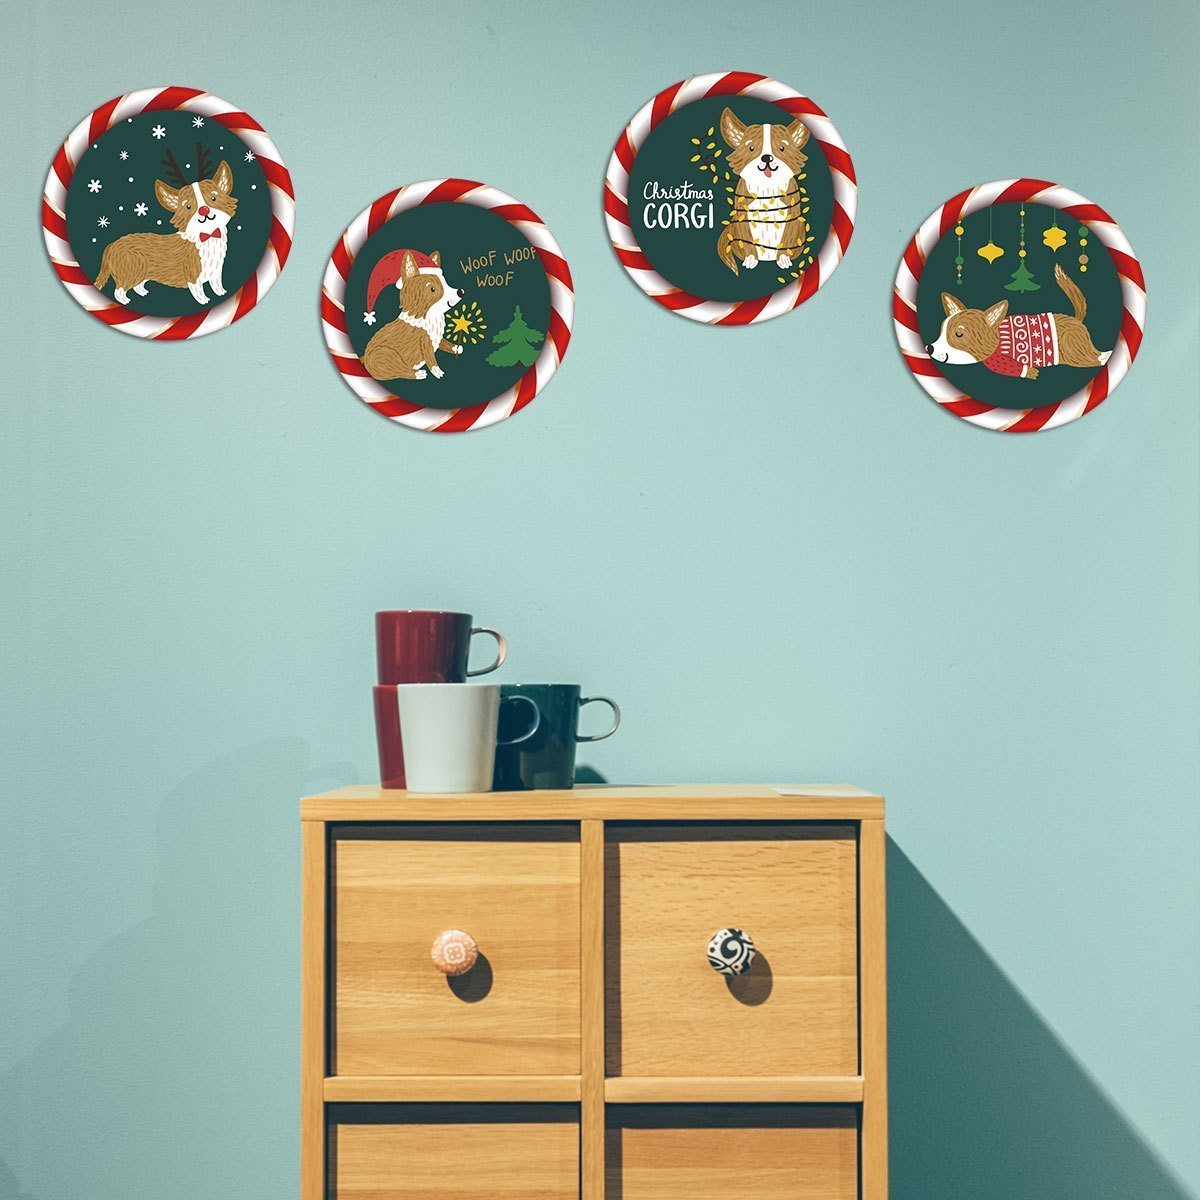 Fechicin.com Holiday GREEN Christmas Wall Sticker Window Sticker